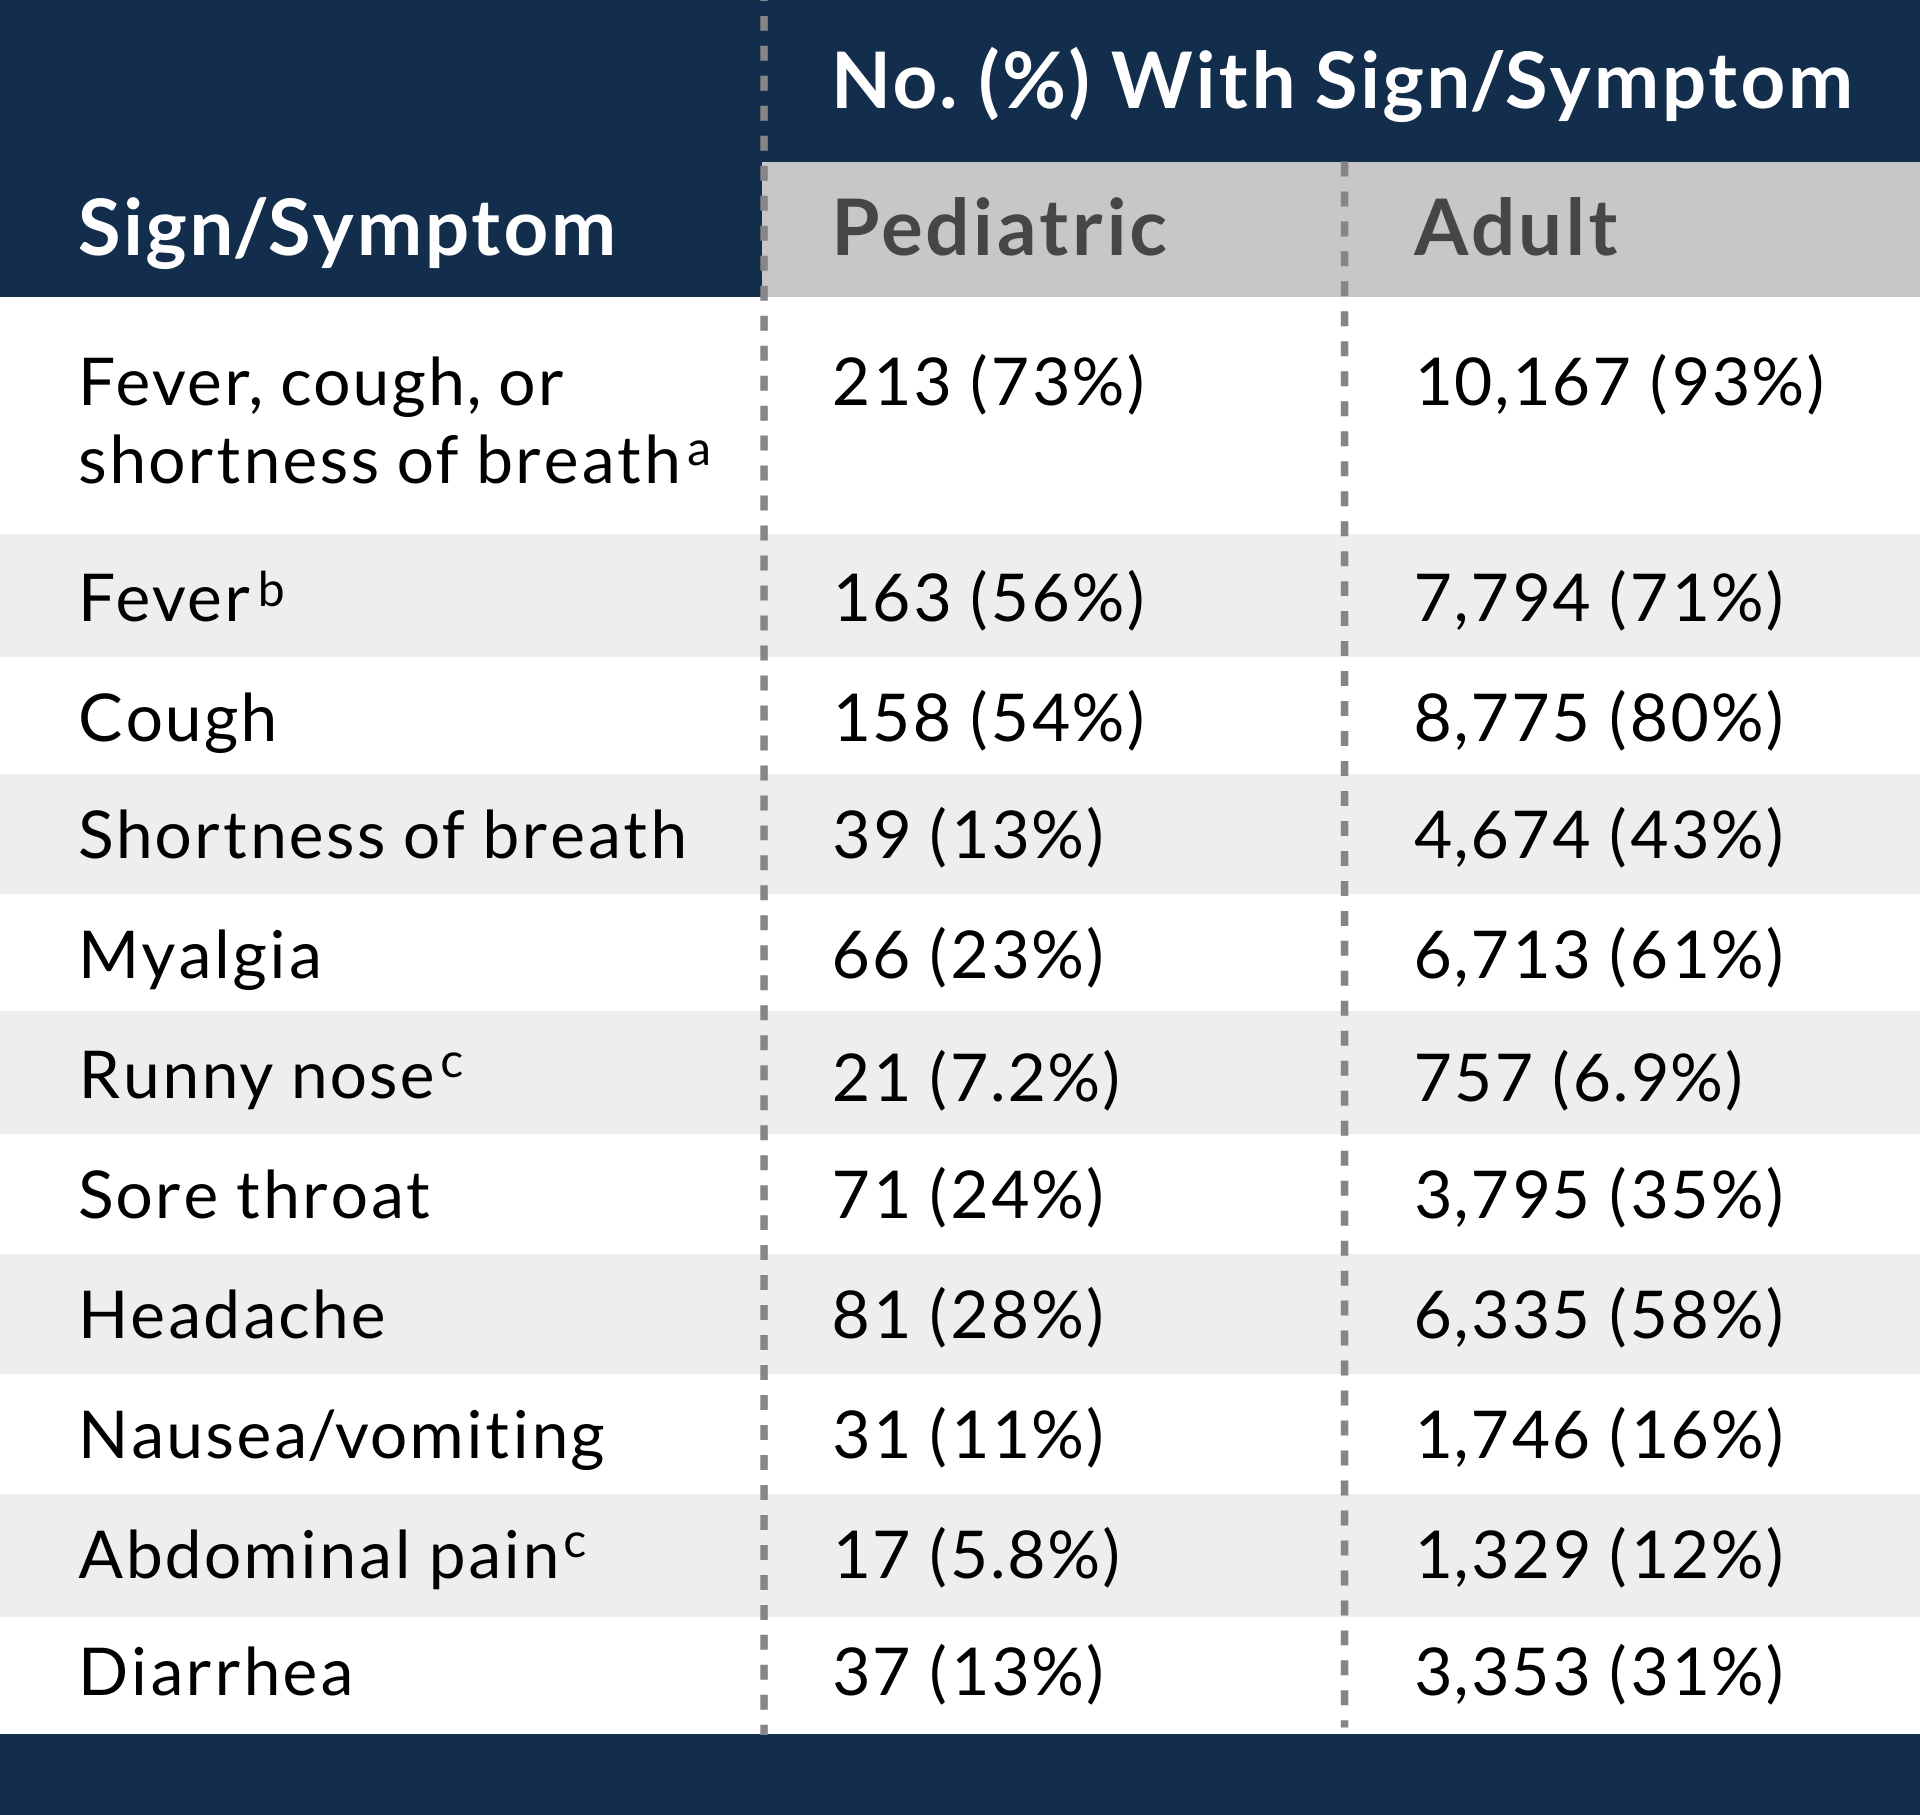 table_6.1_signs_and_symptoms.png